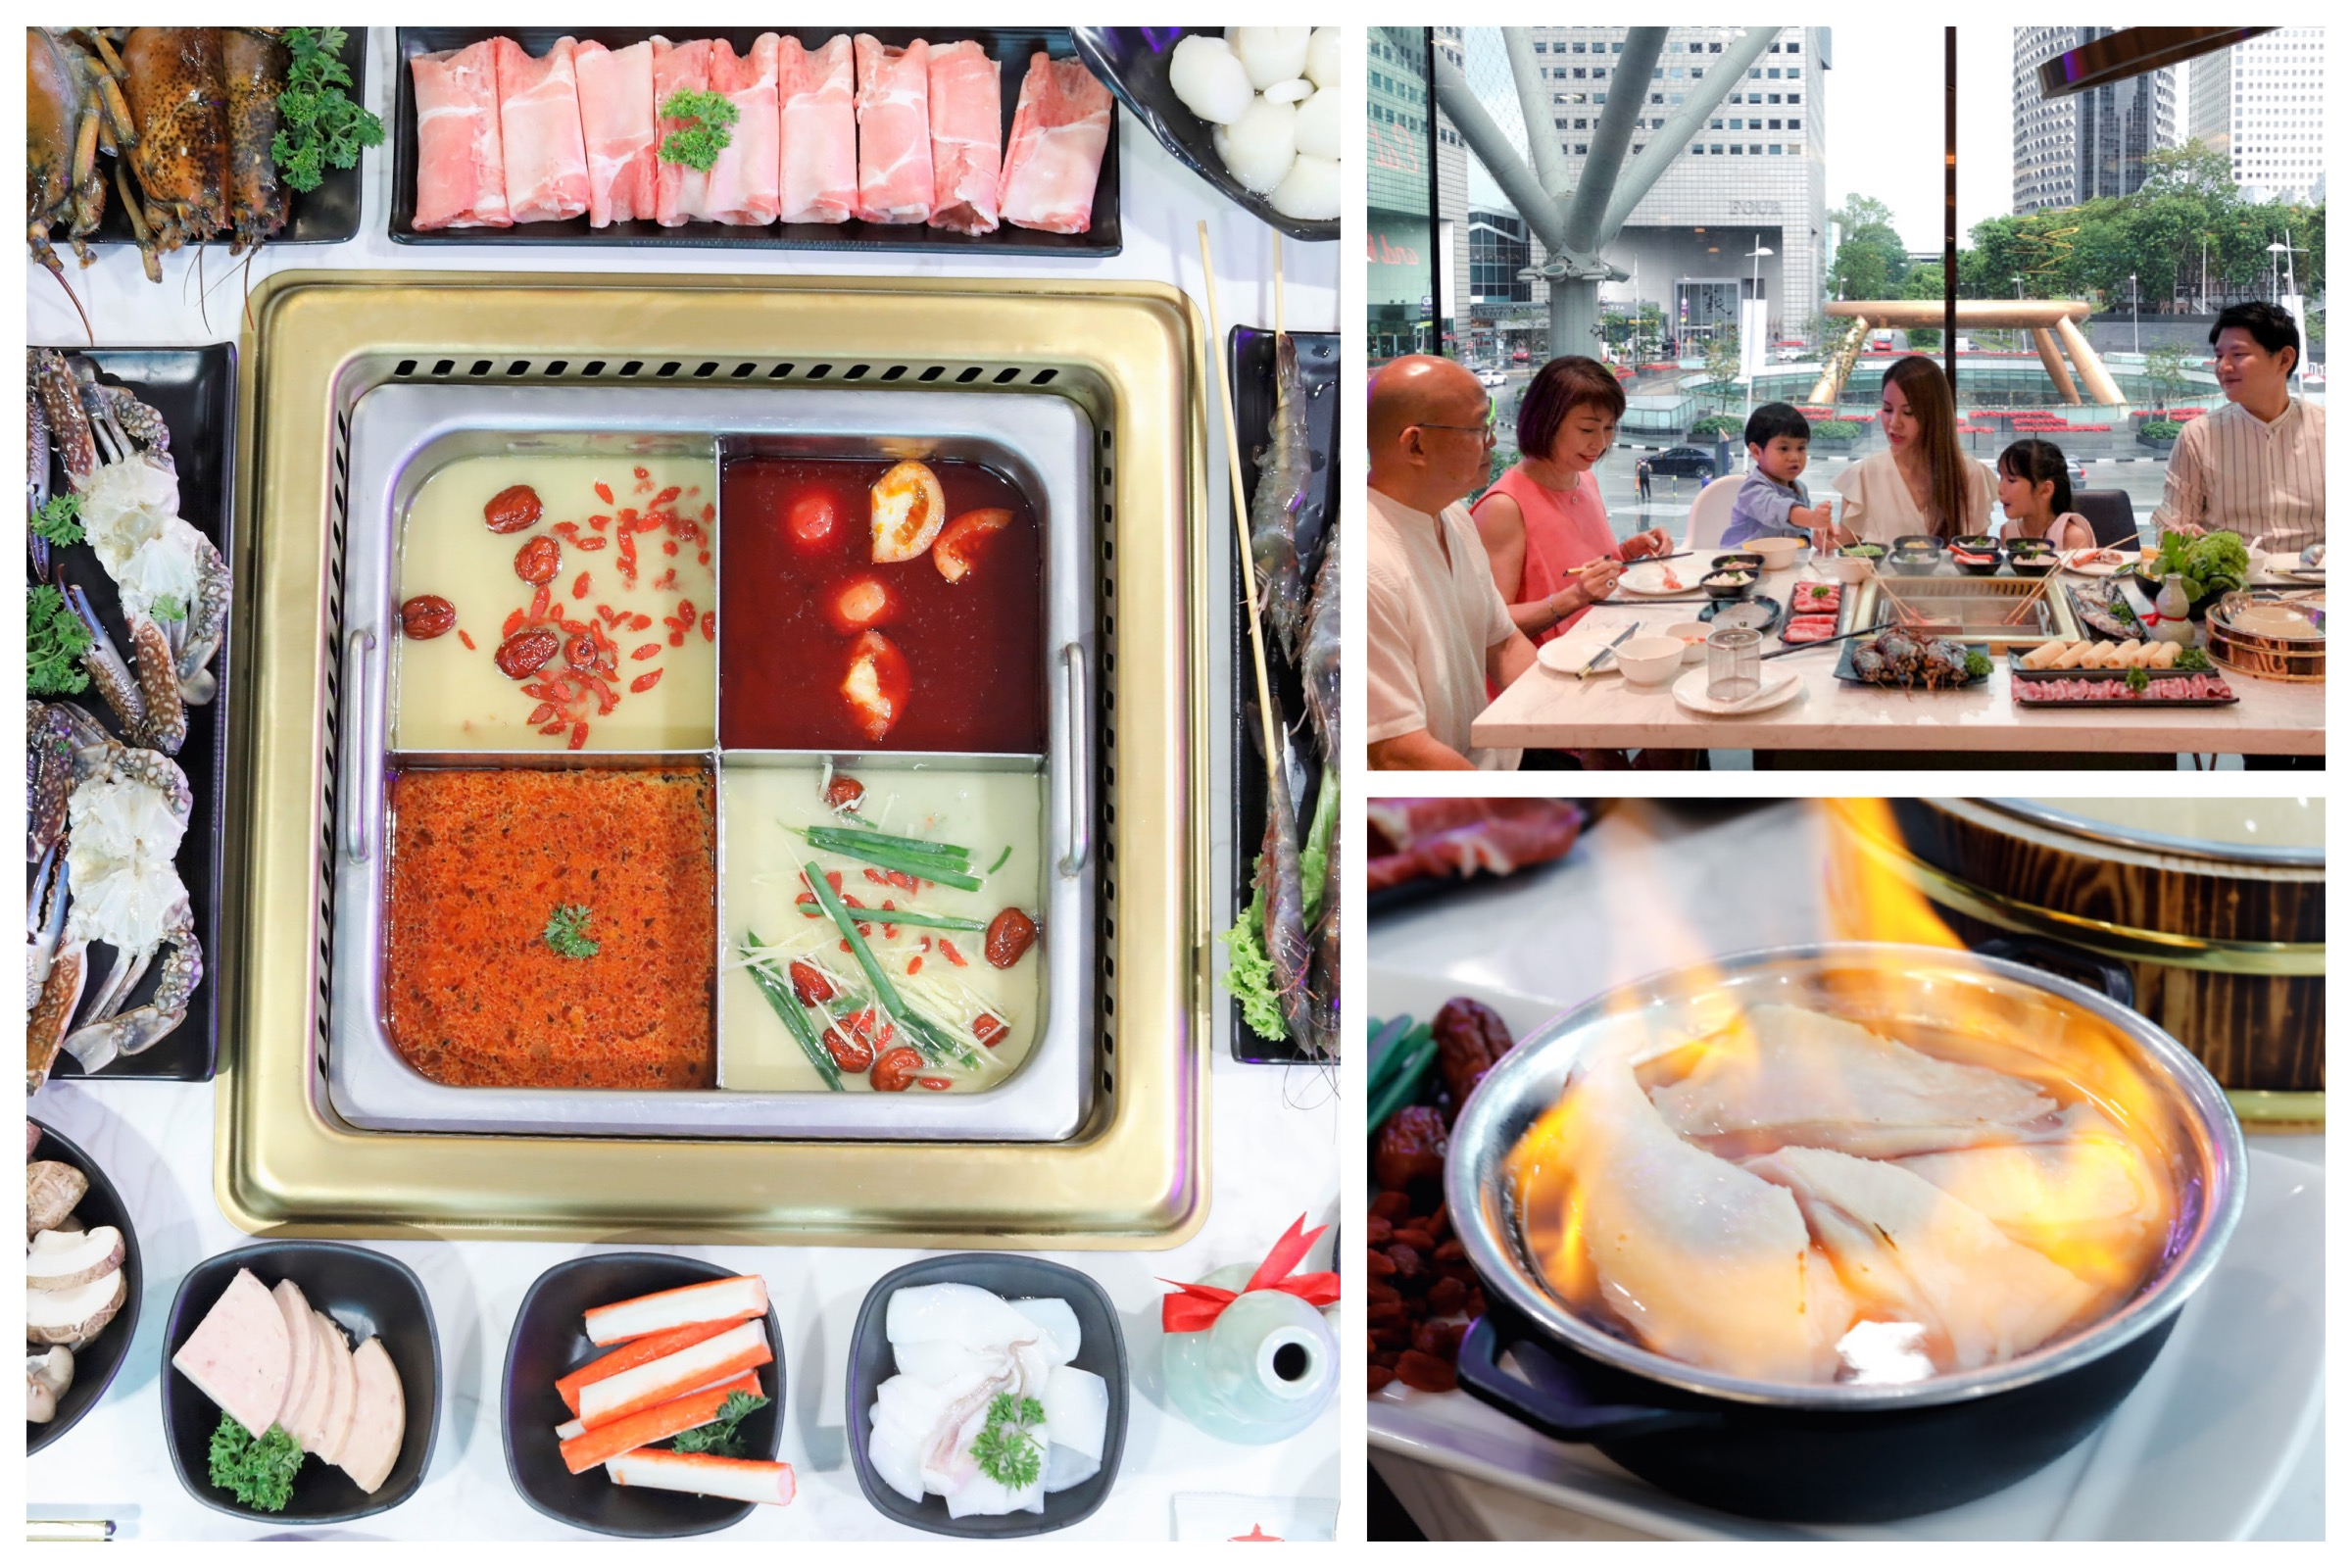 COCA Restaurant - Hotpot At Suntec City With 7 Exciting Broths, Go For The Hua Diao